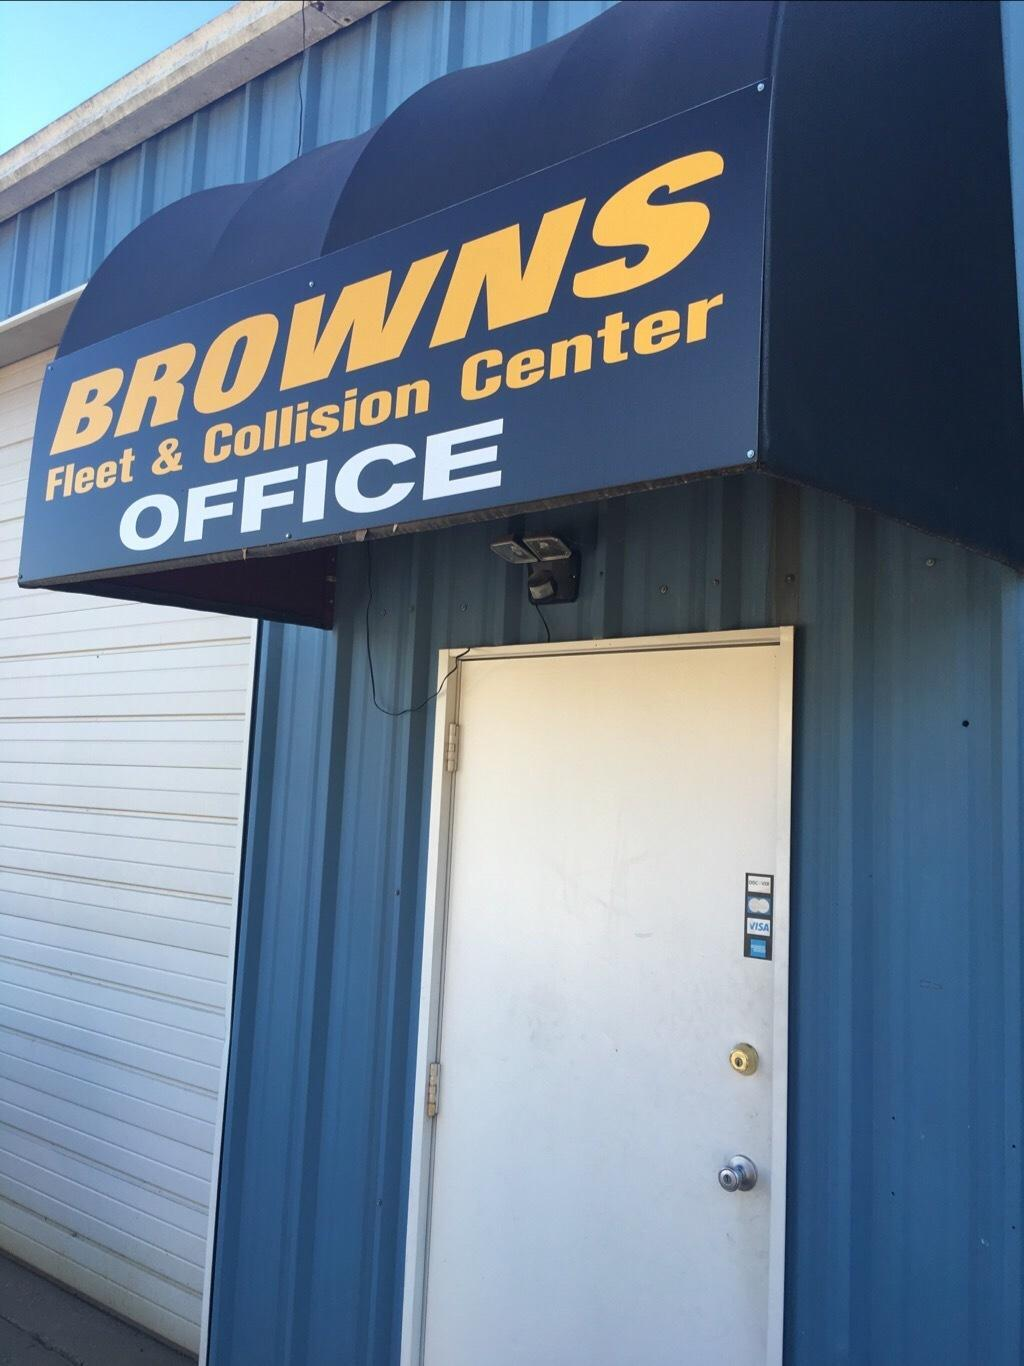 Browns fleet collision repair in tuscaloosa al 35405 for German motors collision center marin street